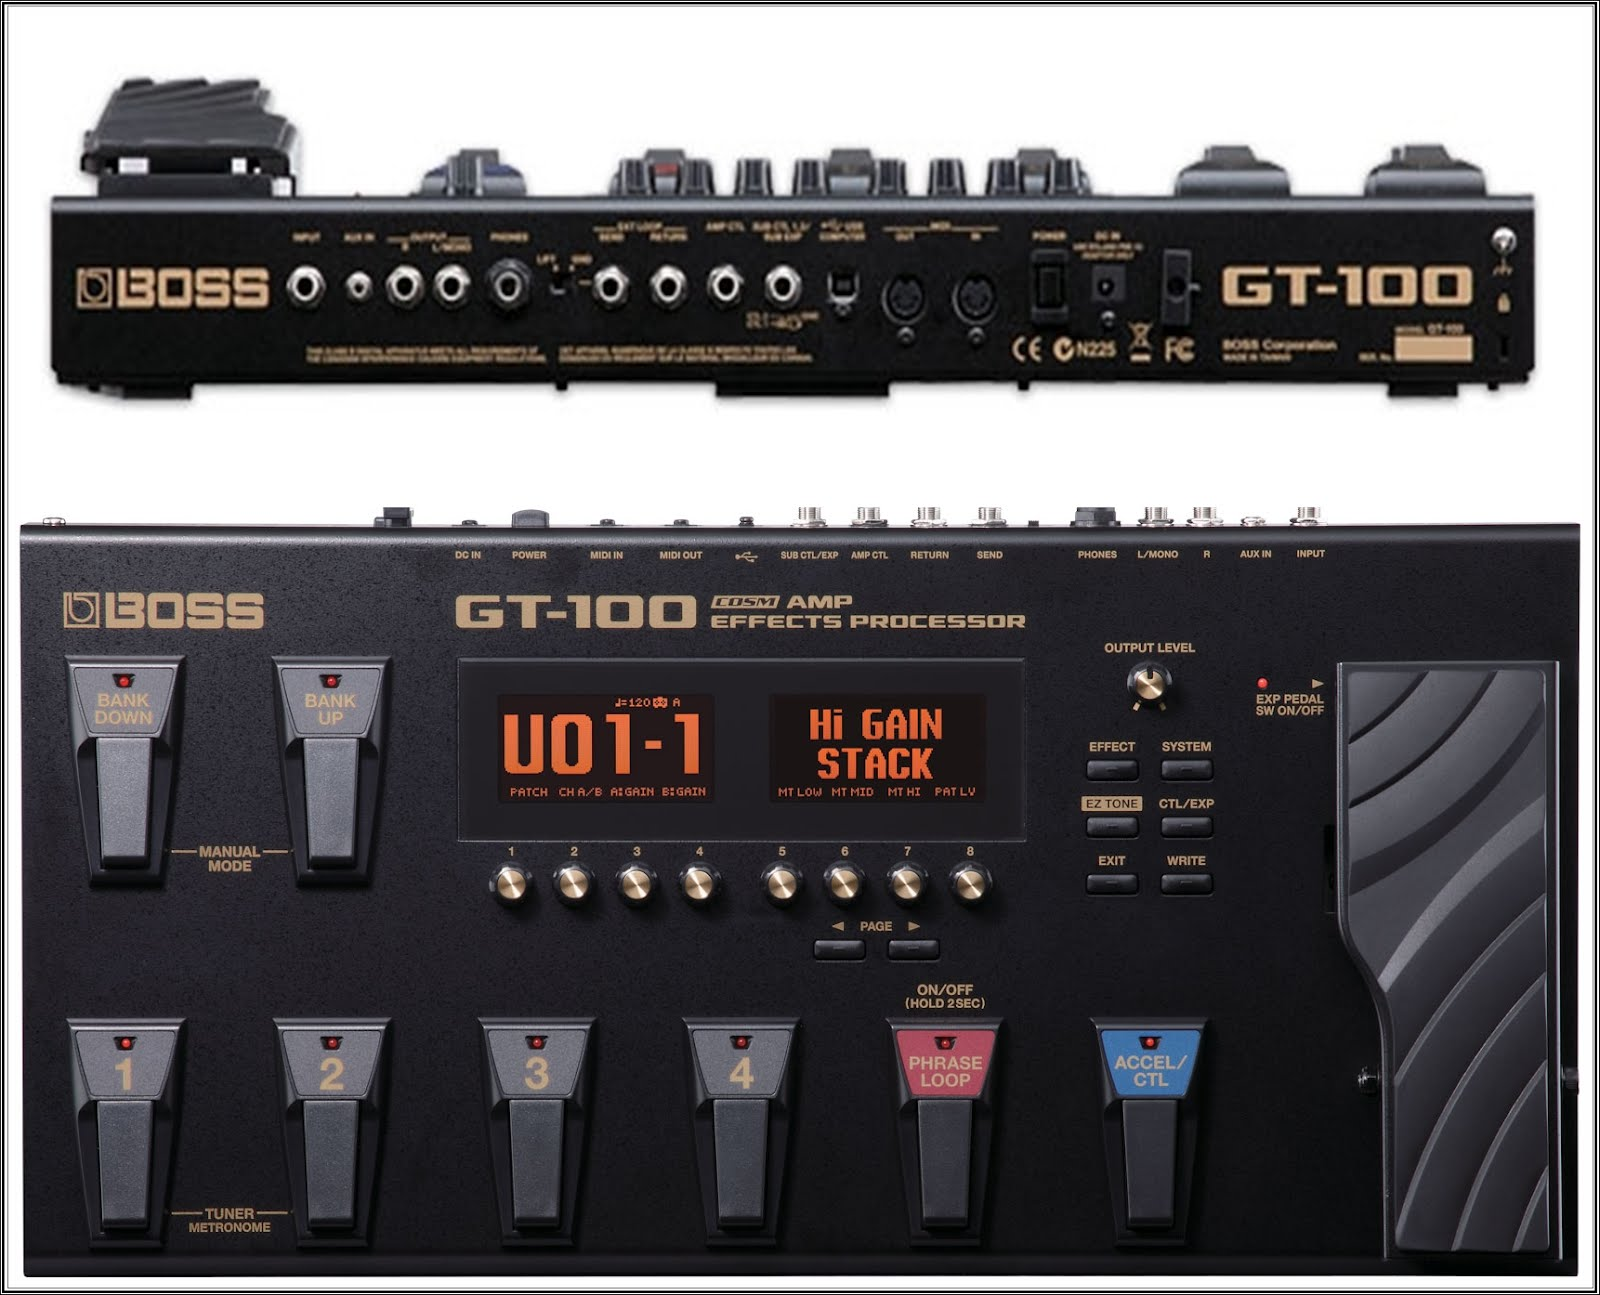 BOSS - The Ultimate Guide to GT-1000